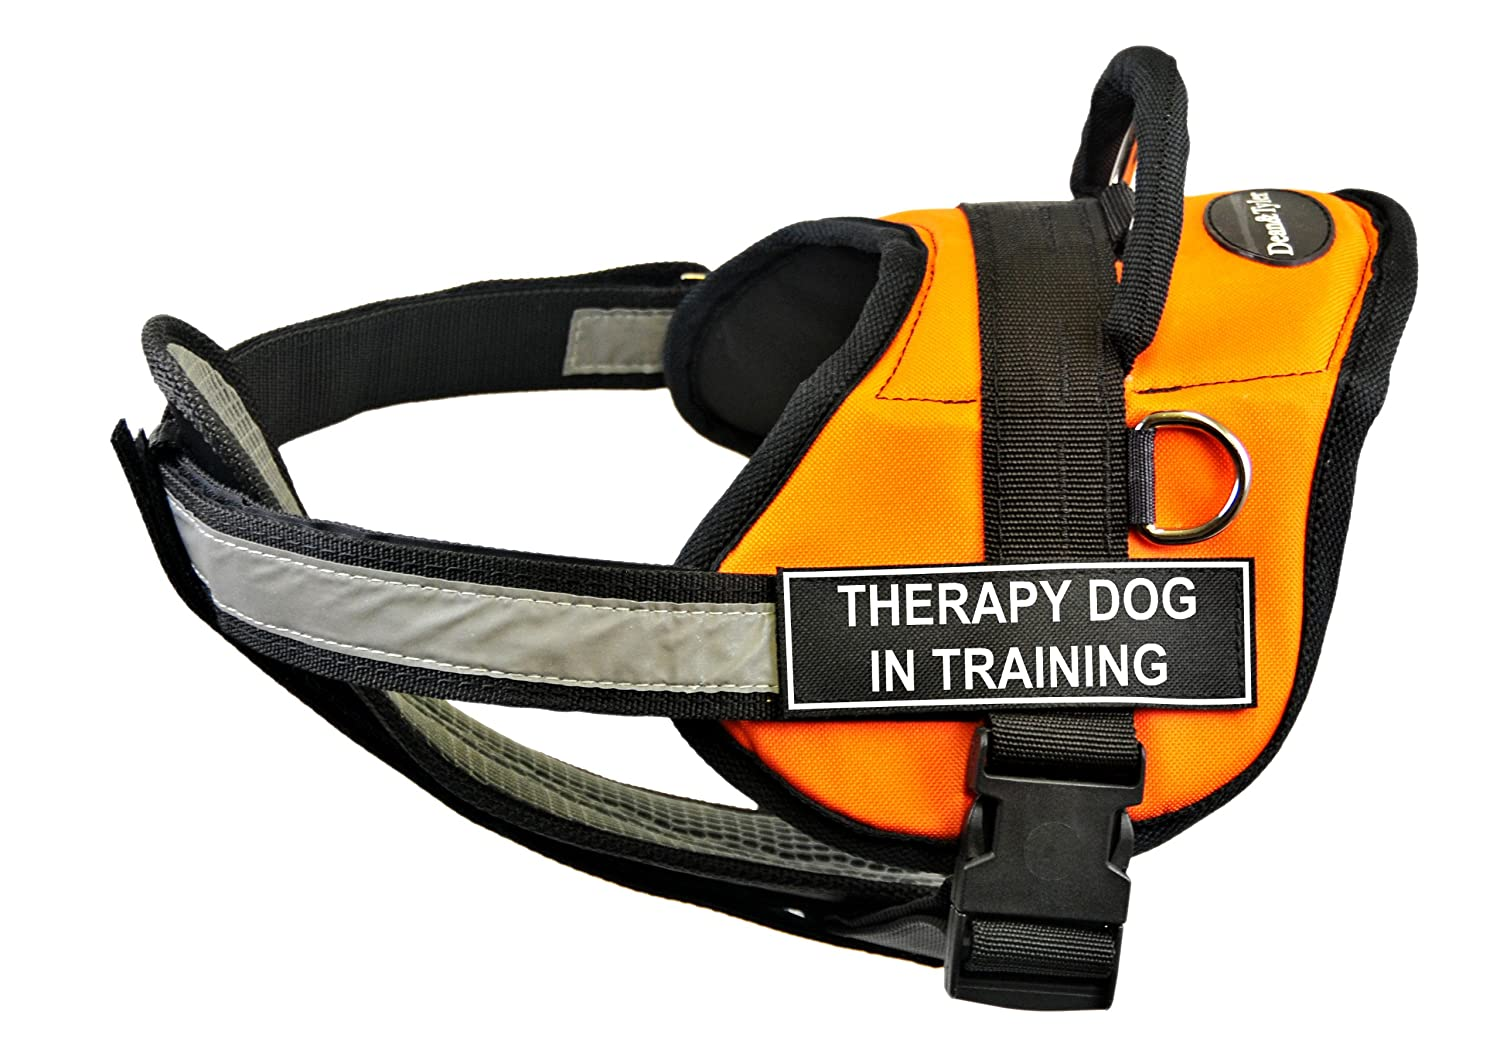 Dean & Tyler 25-Inch to 34-Inch Therapy Dog in Training Harness with Padded Reflective Chest Straps, Small, orange Black